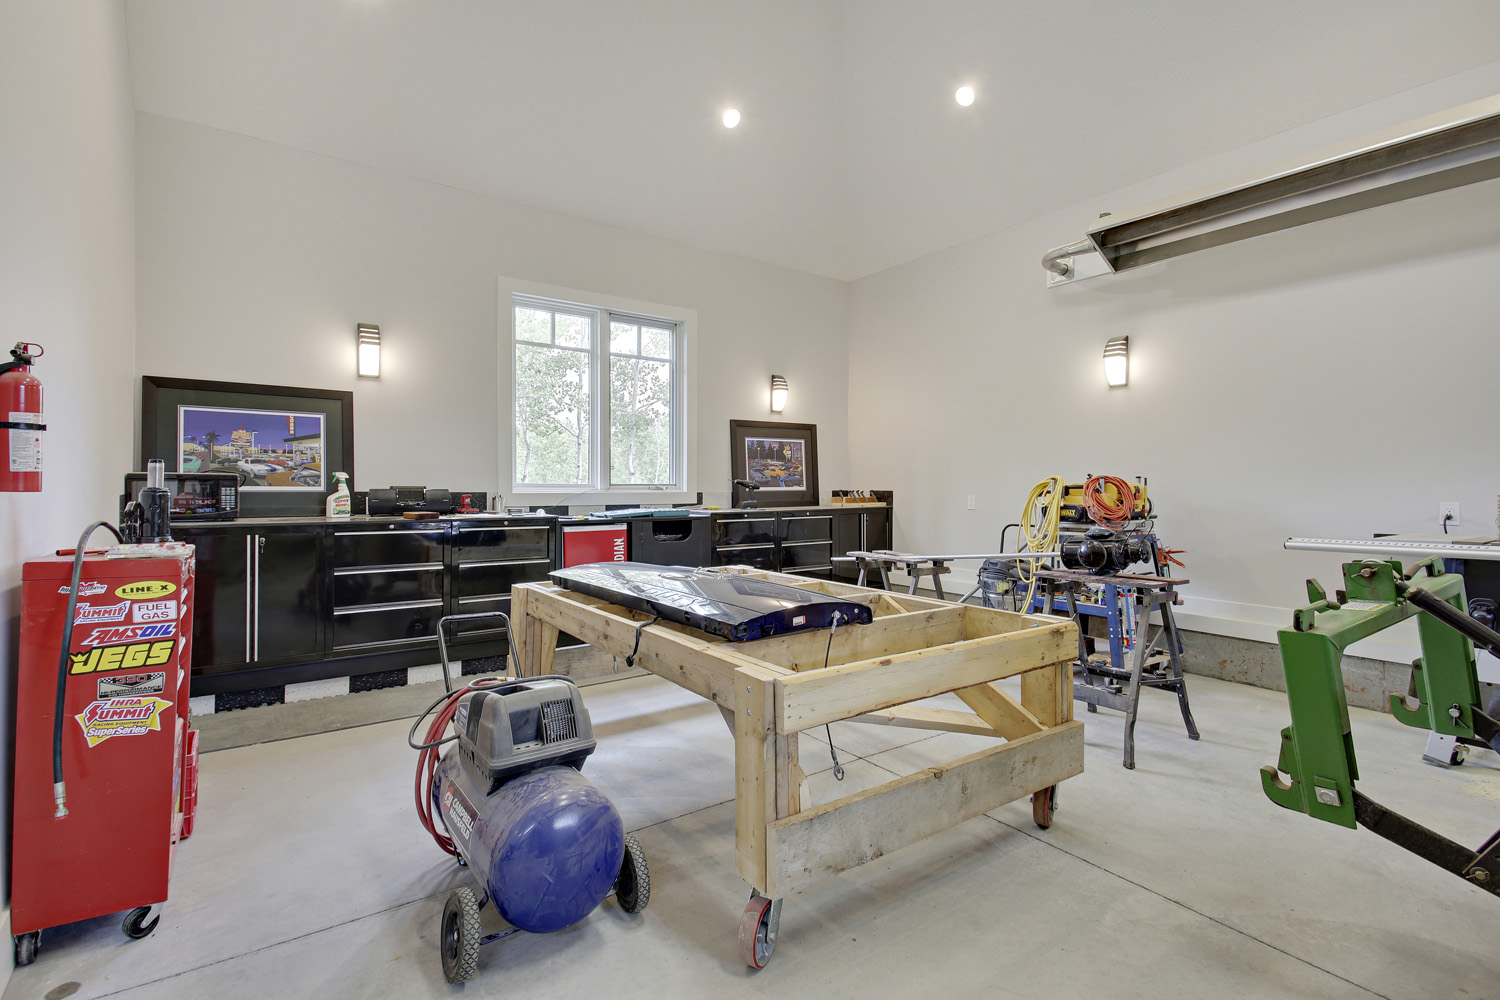 After - Interior garage